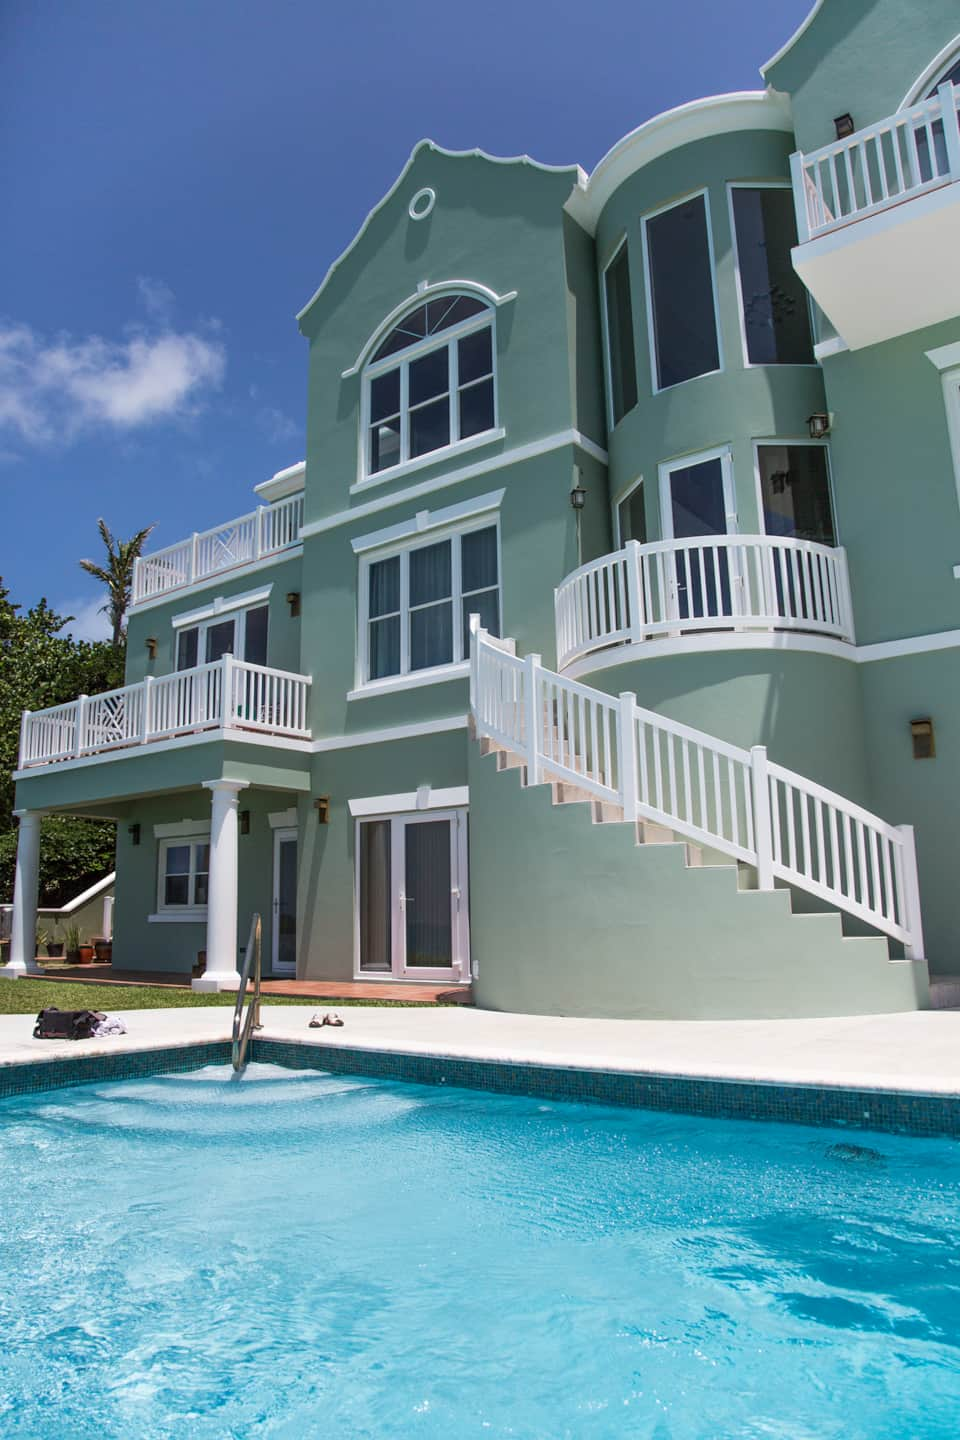 w59 four bedroom oceanside house with pool ocean access horizon pool the house pool area and back of house